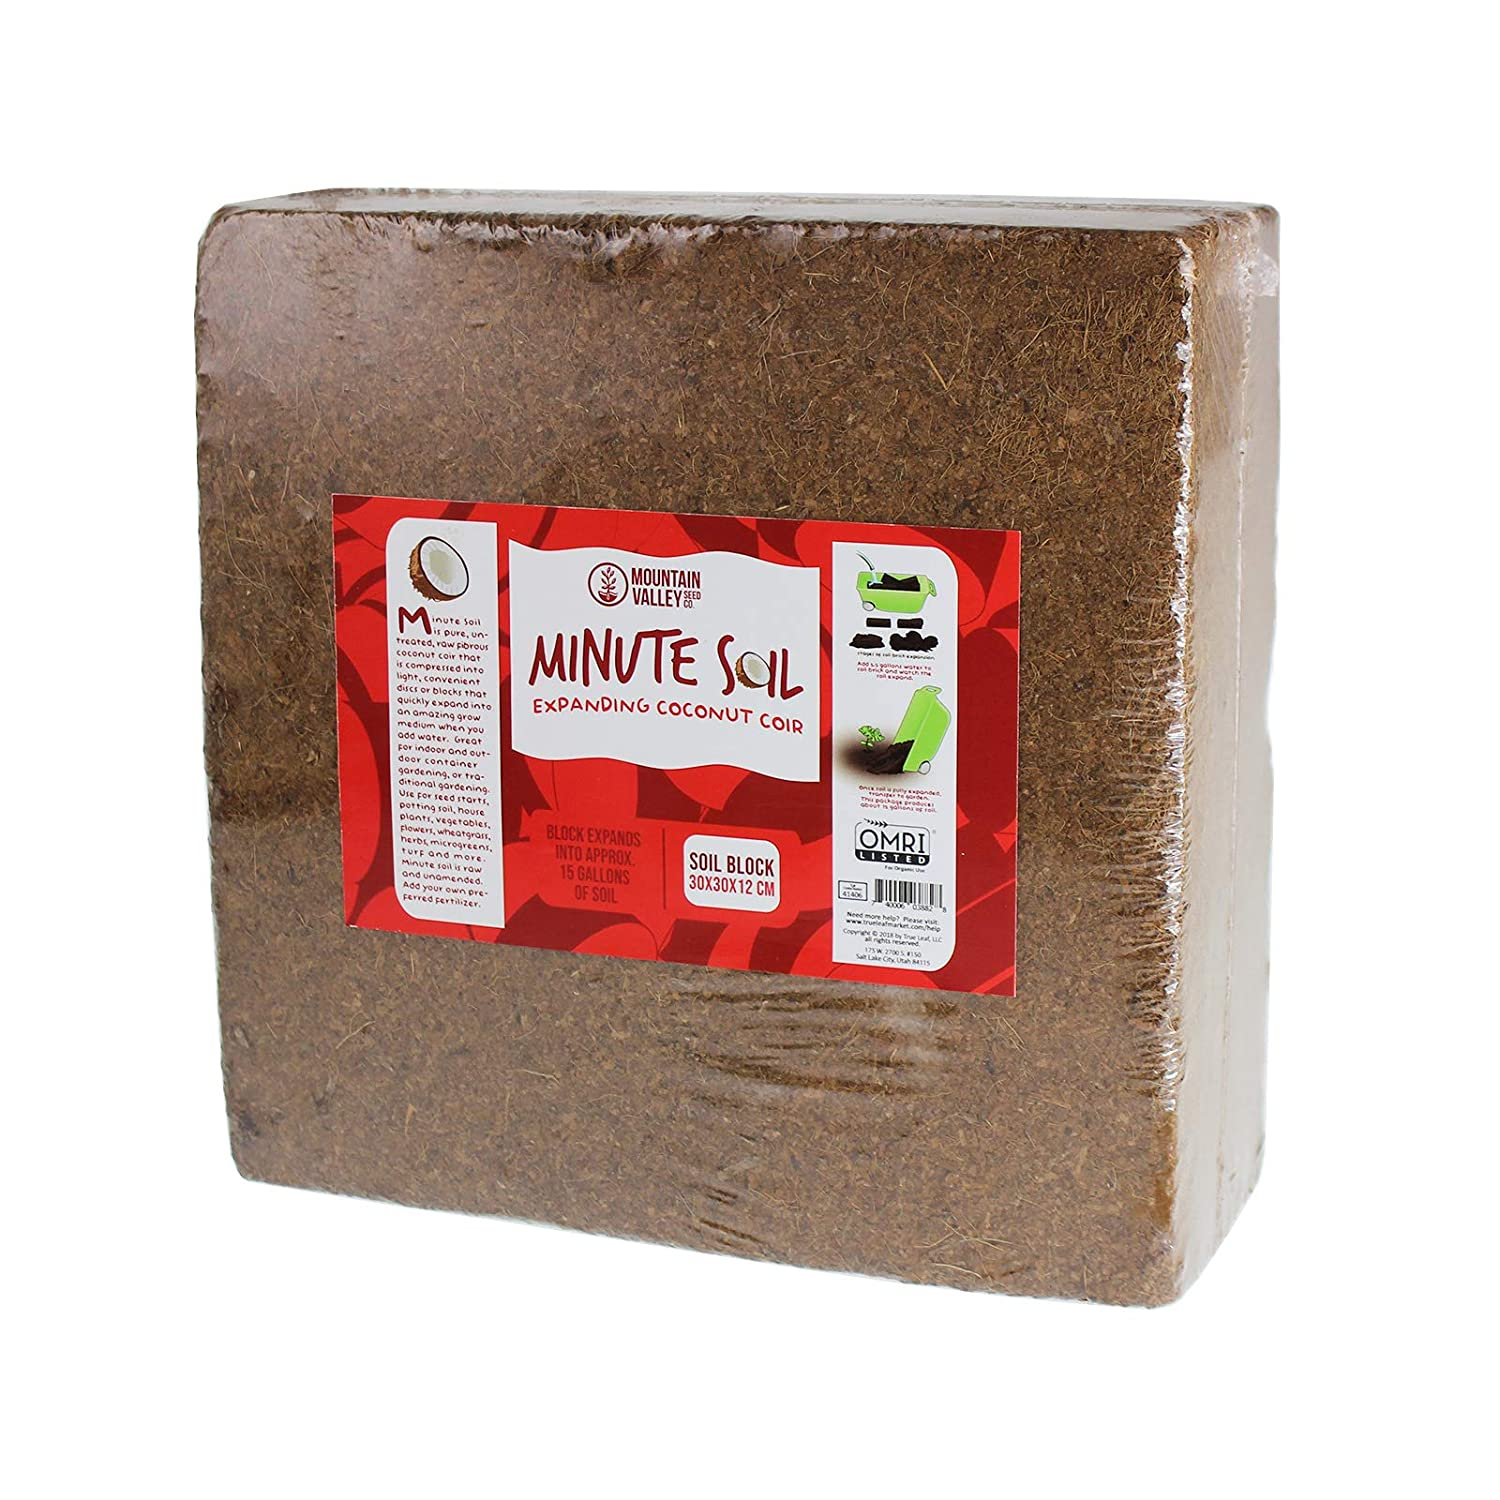 Minute Soil - Compressed Coco Coir Fiber Grow Medium - 1 Block = 15 Gallons of Potting Soil (Approx Wheelbarrow Full) - Gardening, Flowers, Herbs, Microgreens - Add Water - Peat Free - OMRI Organic